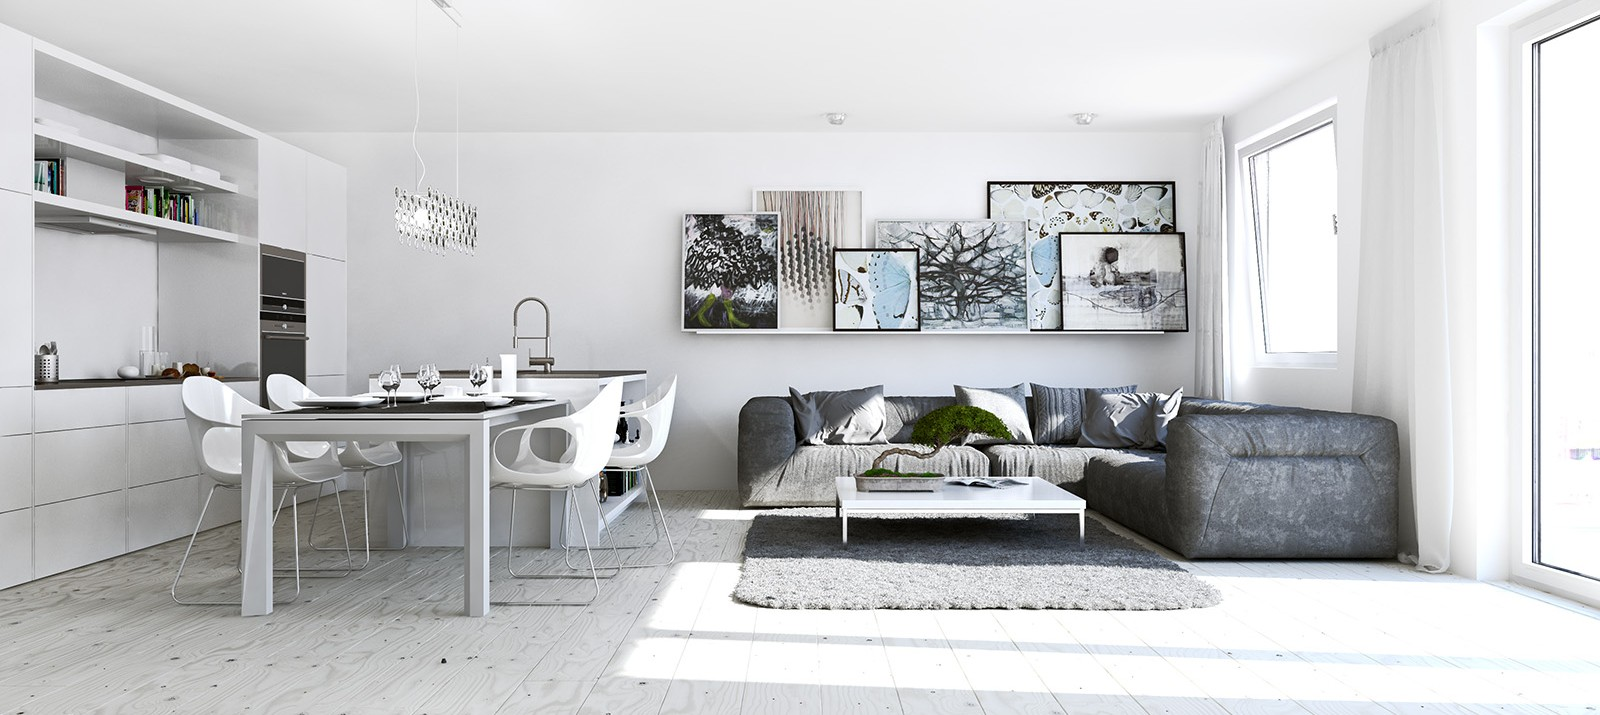 A White Interior In Studio Apartment Reflects Light To Make Room Feel Bigger